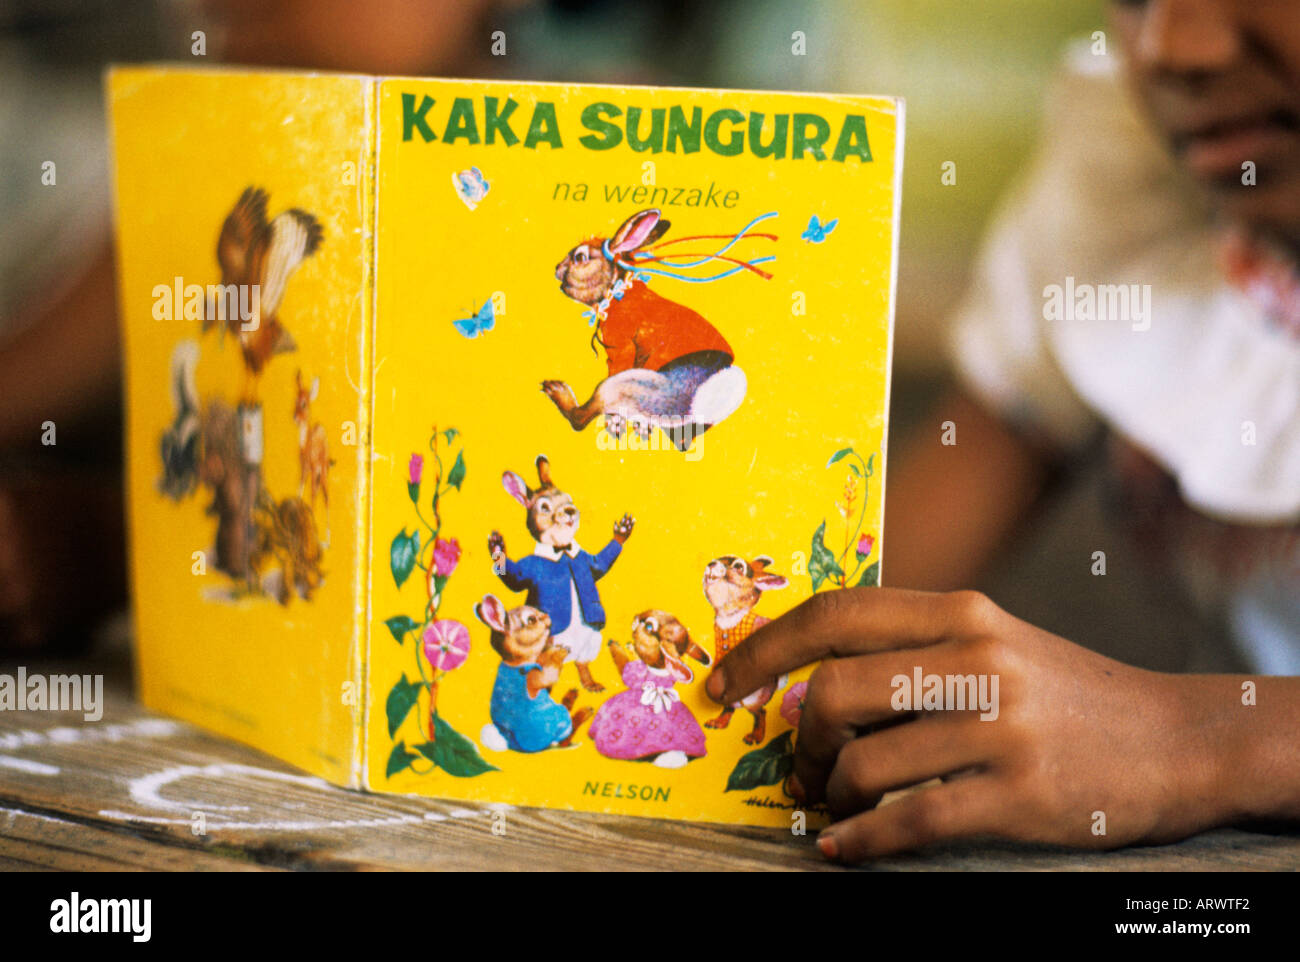 In Kenya a children's book in Swahili is about a baby rabbit - Stock Image